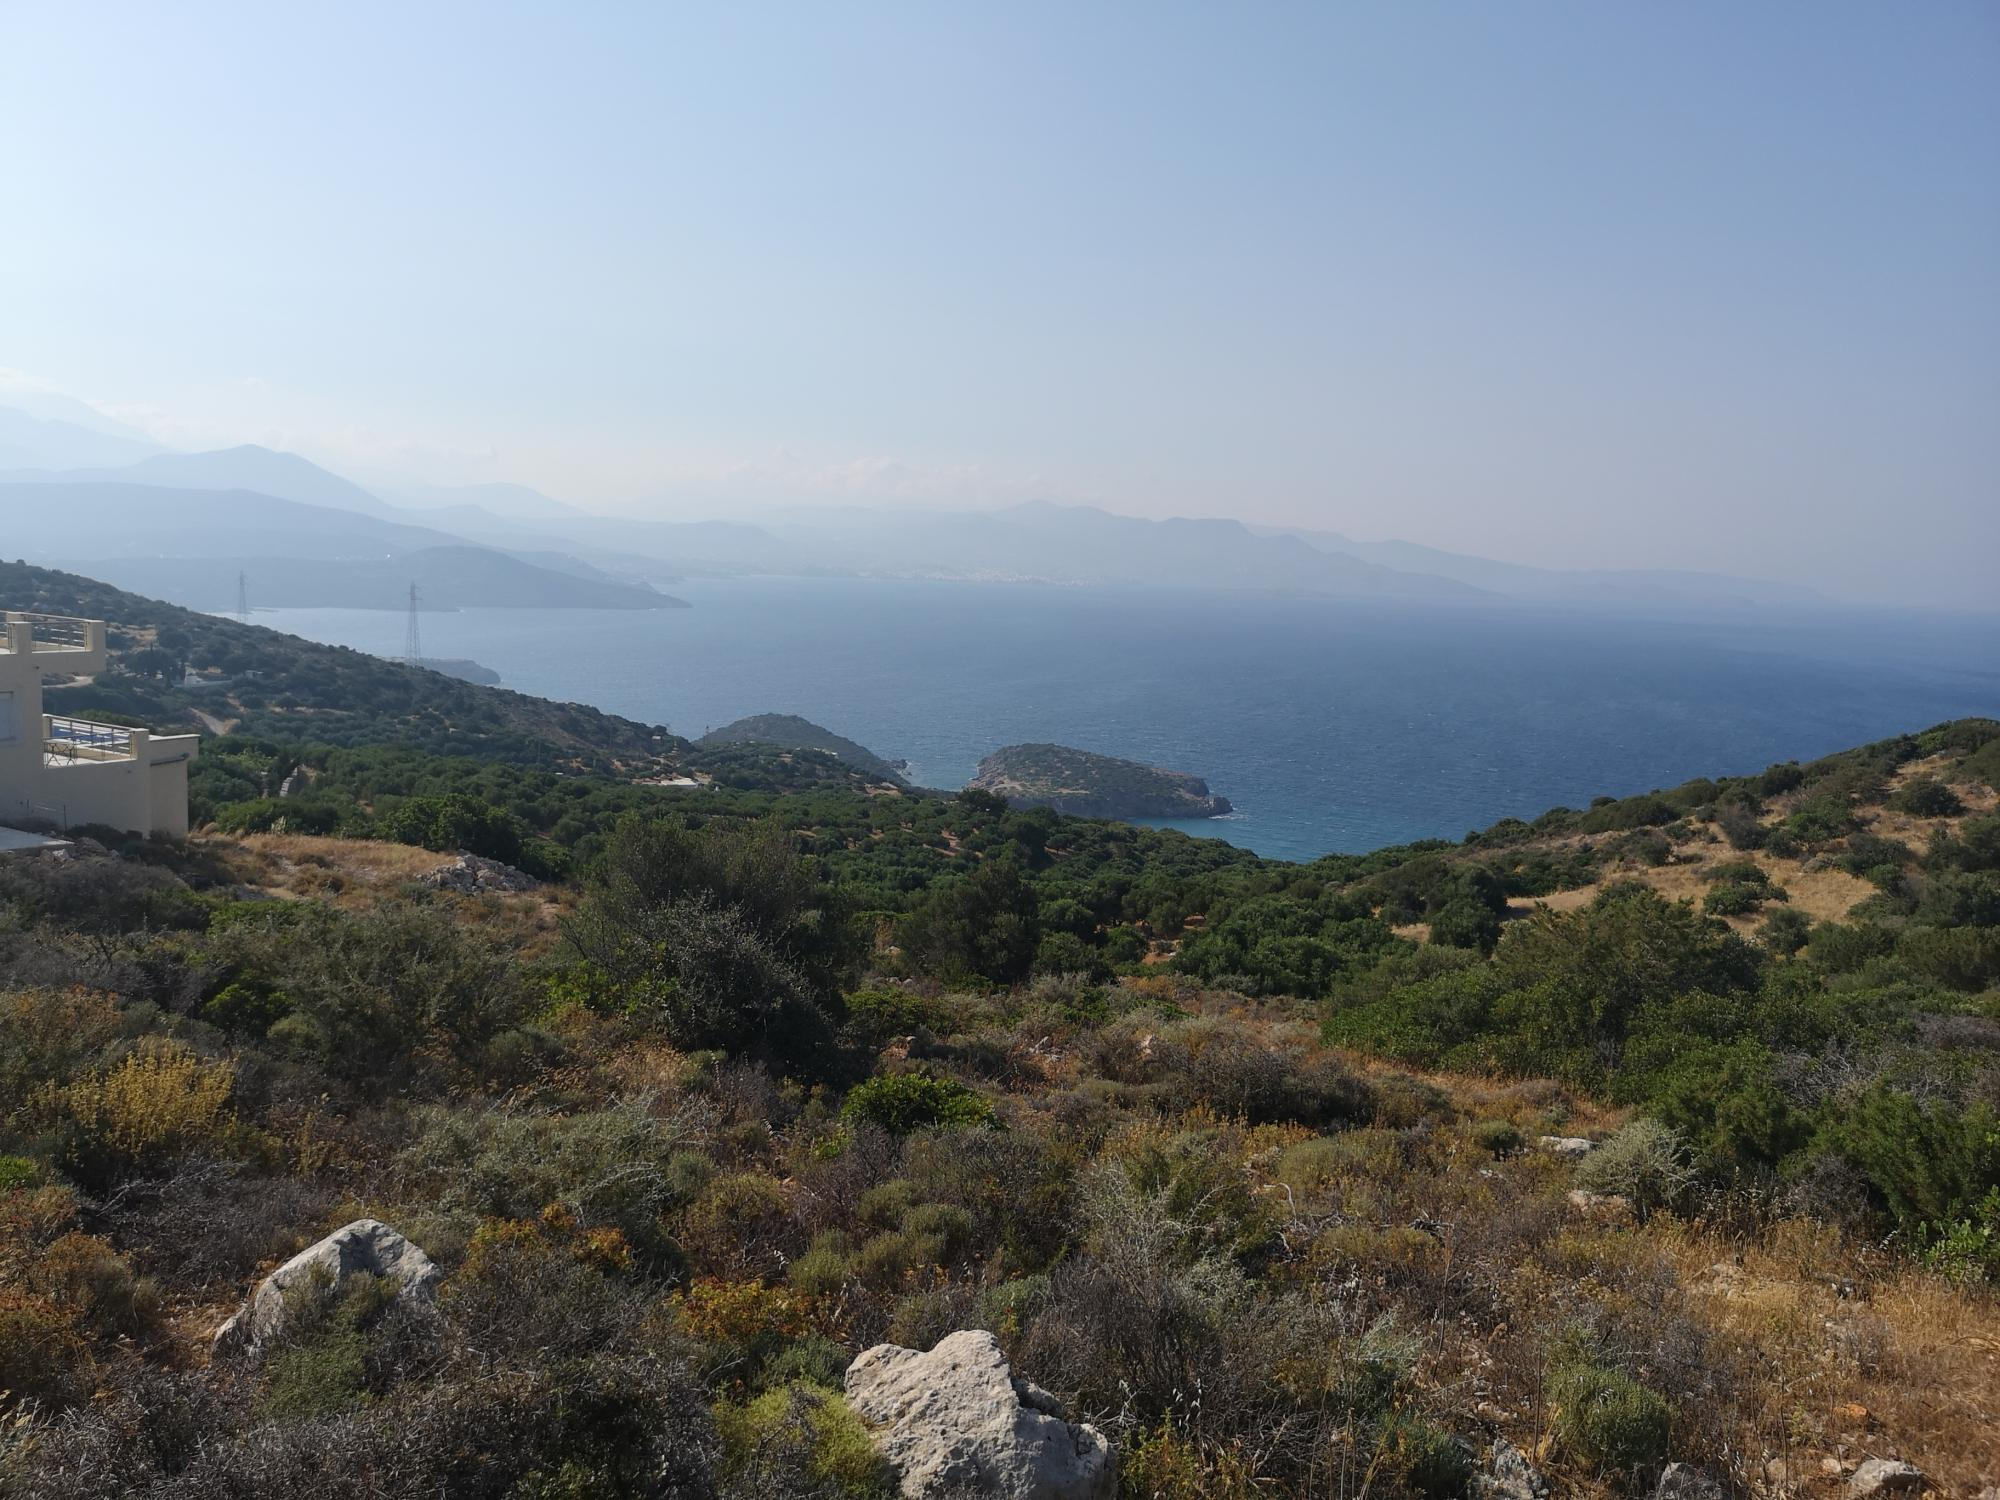 Building land, 4010 m2, close to beaches, awesome views